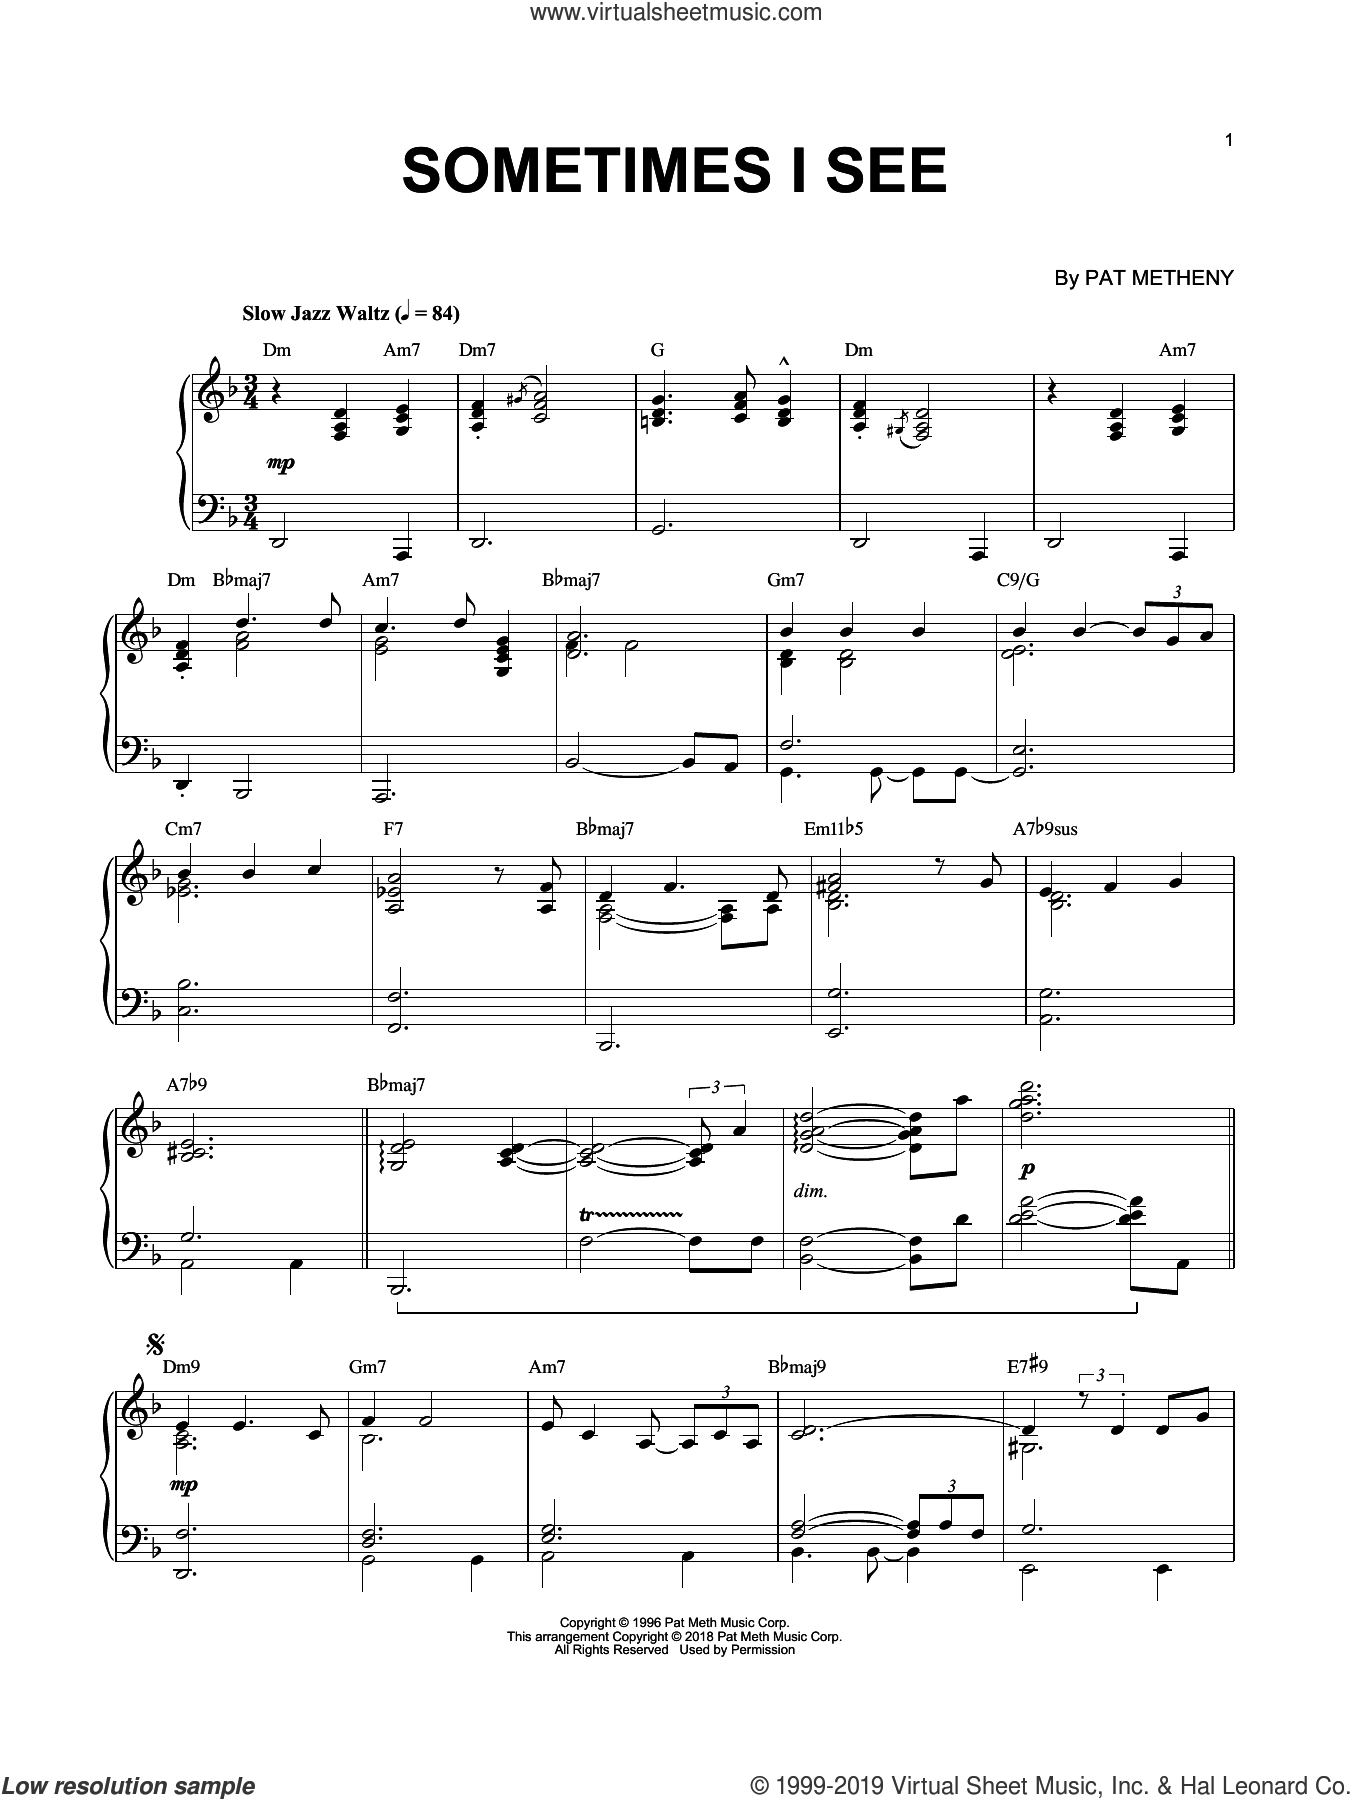 Sometimes I See sheet music for piano solo by Pat Metheny, intermediate skill level